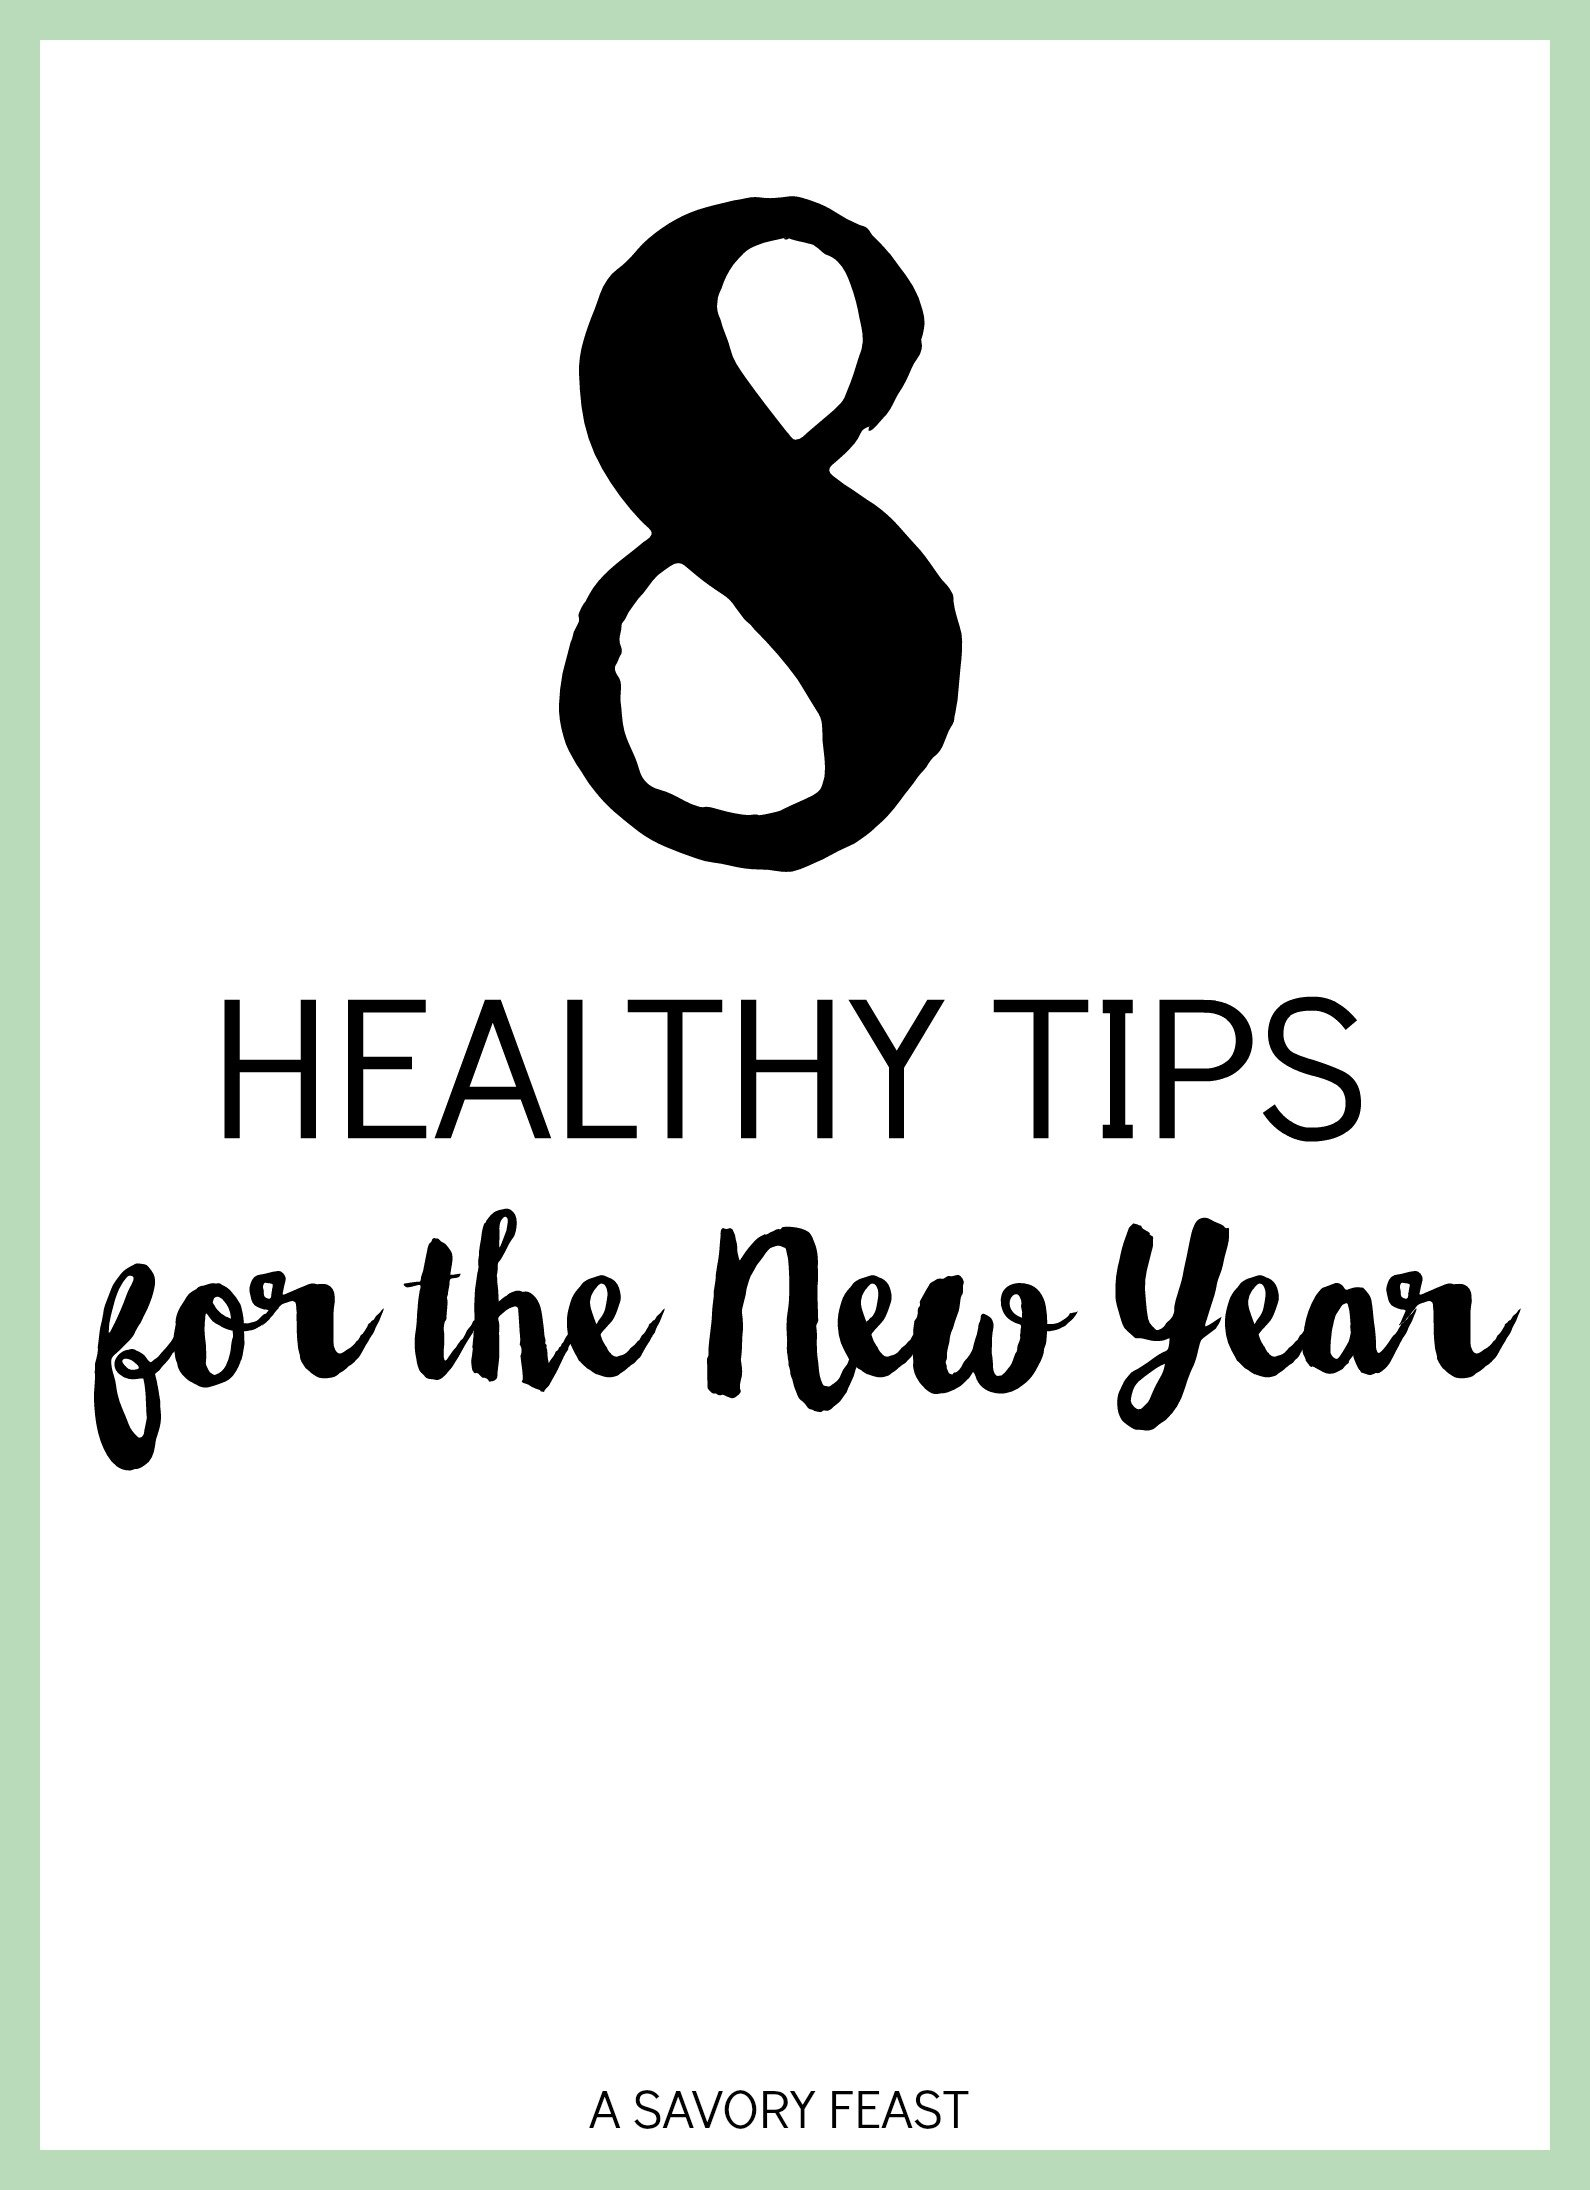 8 Healthy Tips for the New Year // Stay on track with your resolutions!